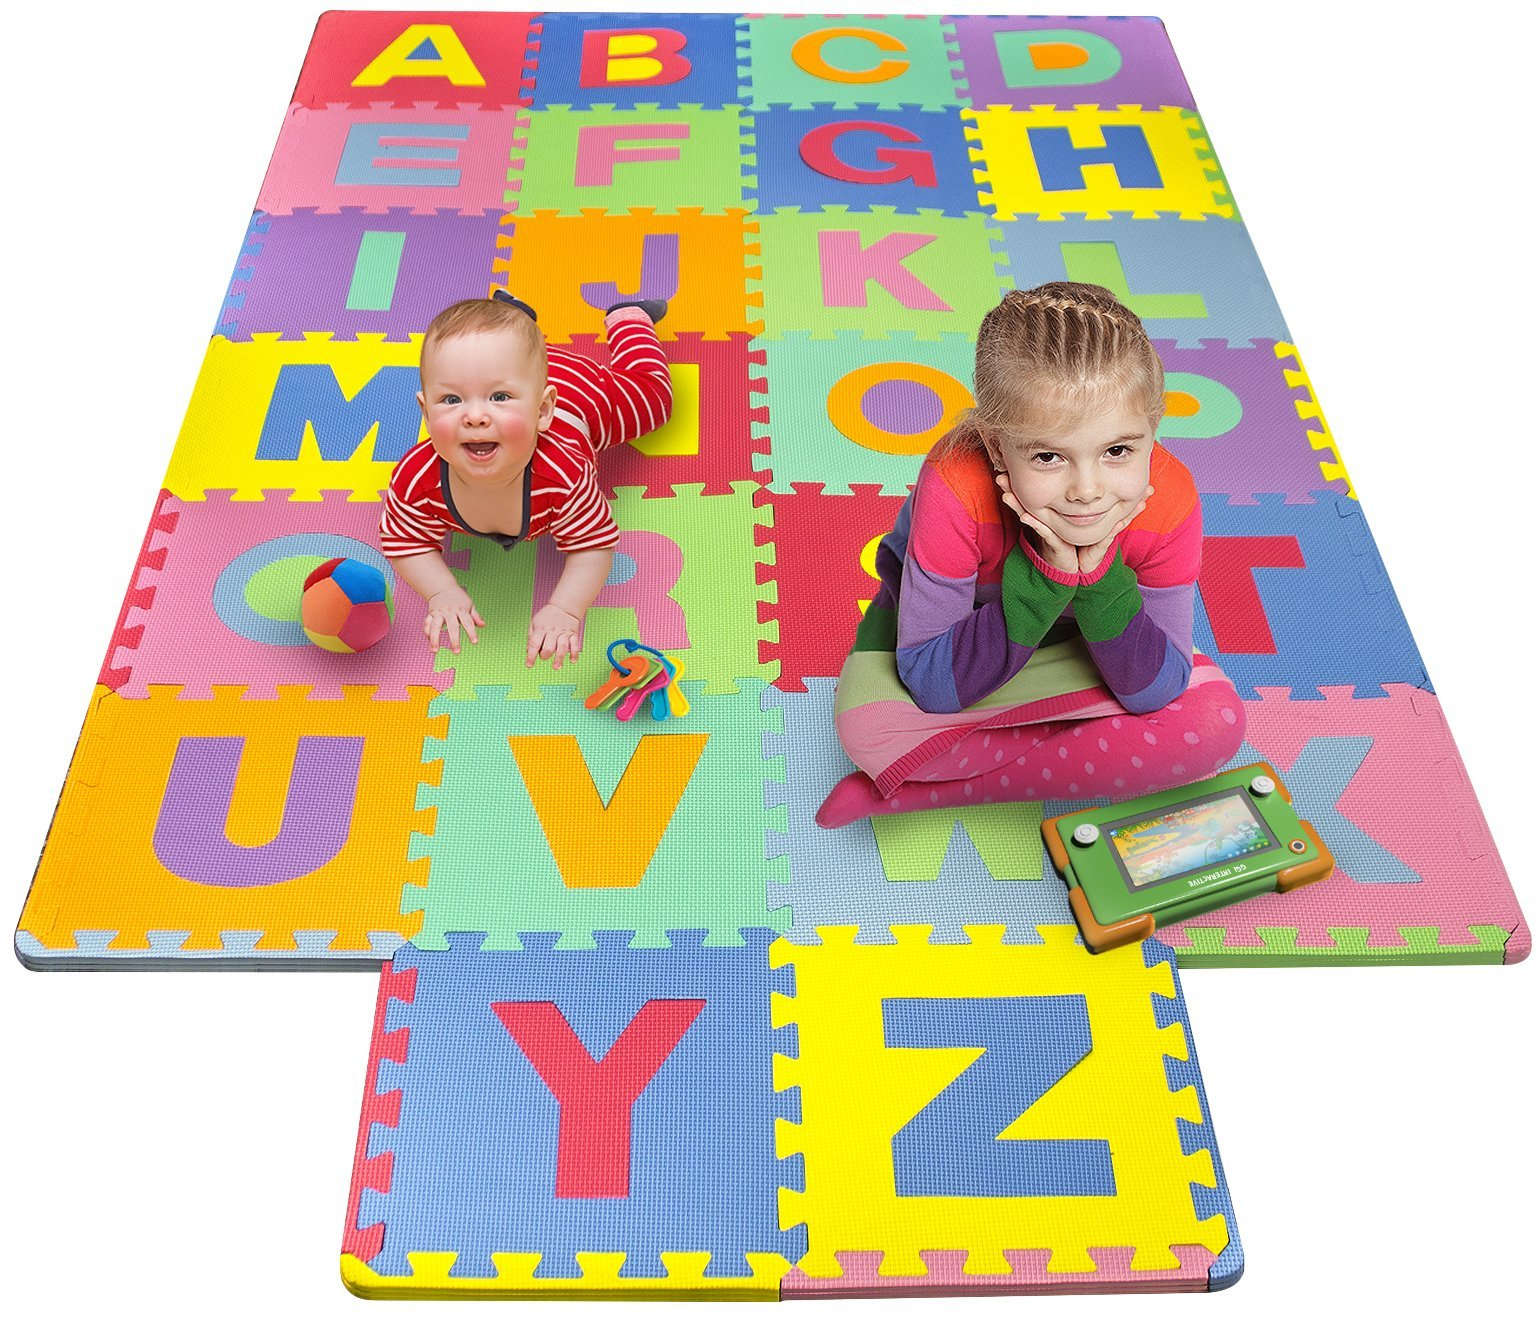 Matney Foam Mat of Alphabet Puzzle Pieces- Great for Kids to Learn and Play - Interlocking Puzzle Pieces by Matney®